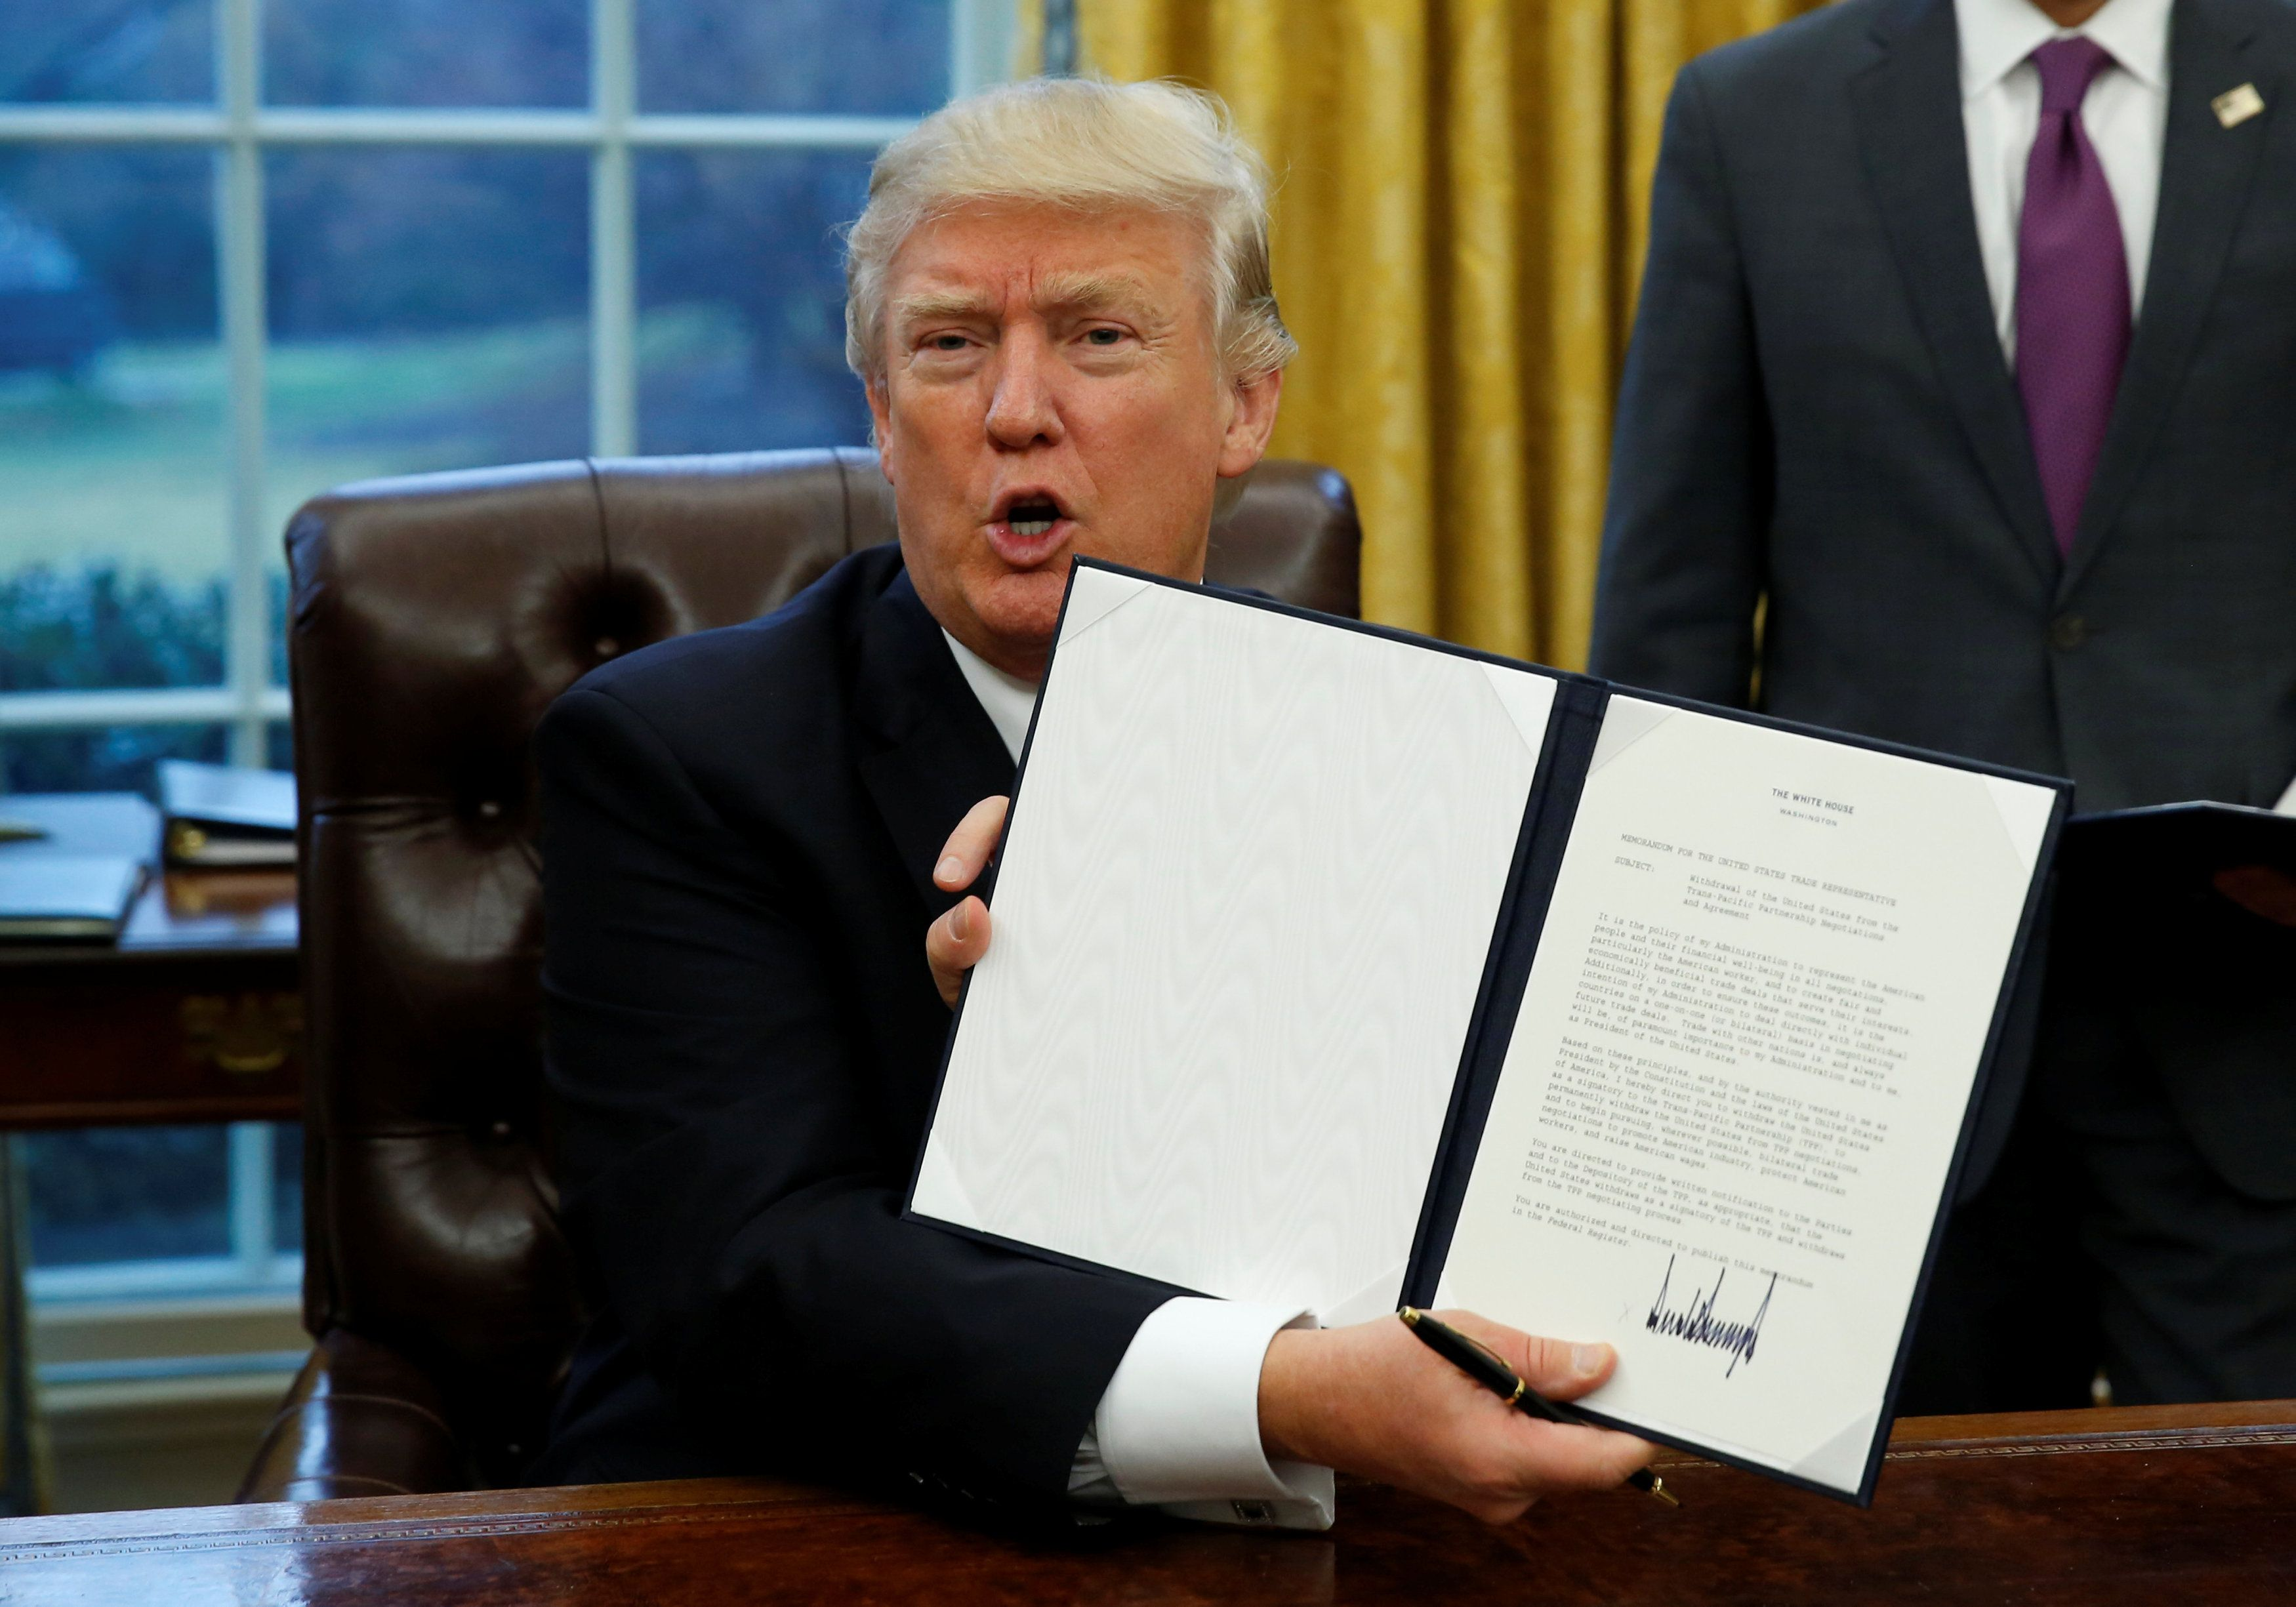 Trump freezes hiring of many federal workers | Trump